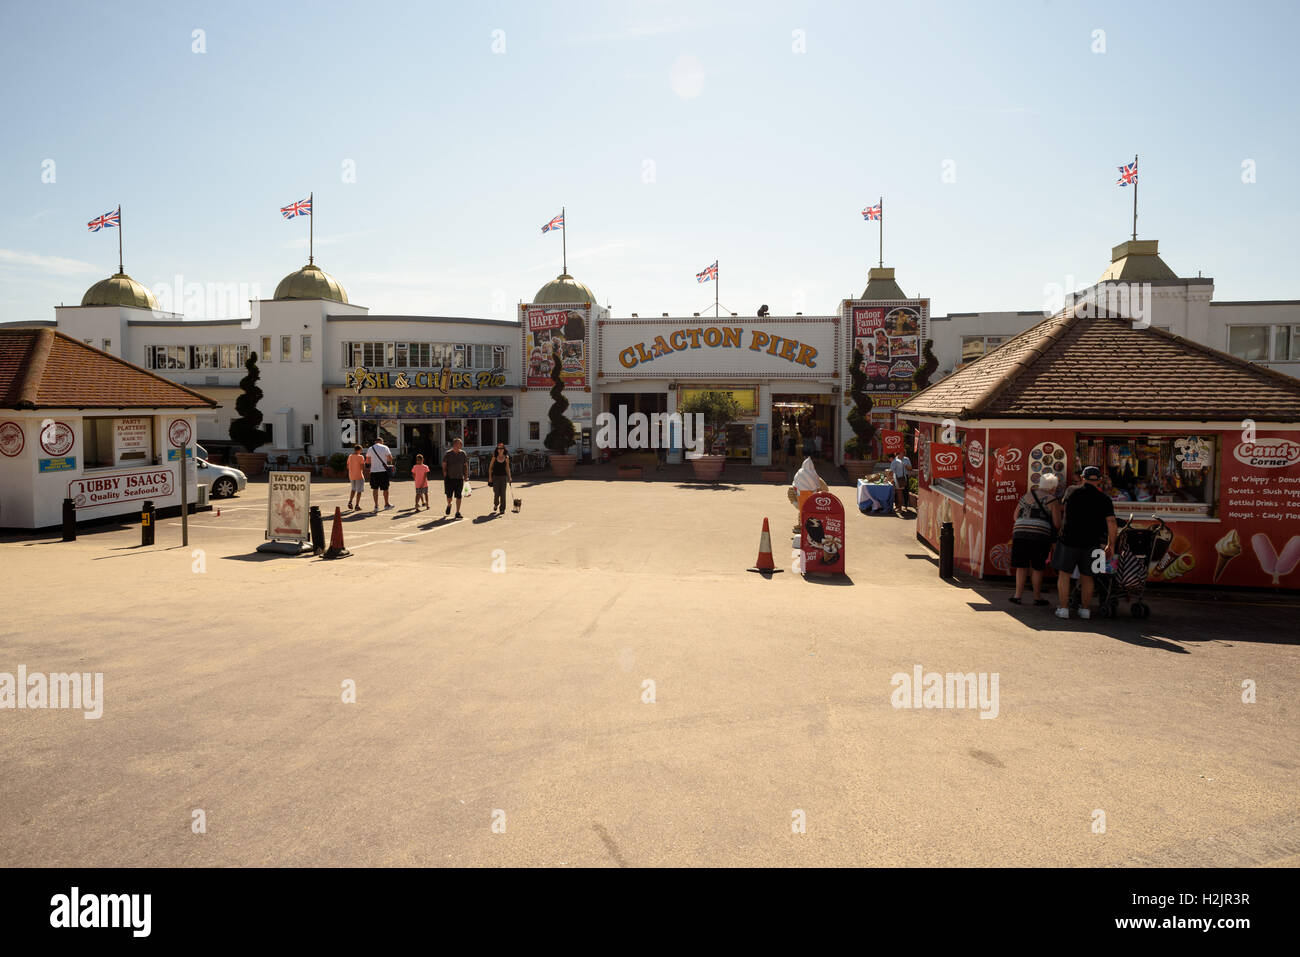 Clacton Pier is a famous seaside attraction in Essex England during the summer months - Stock Image